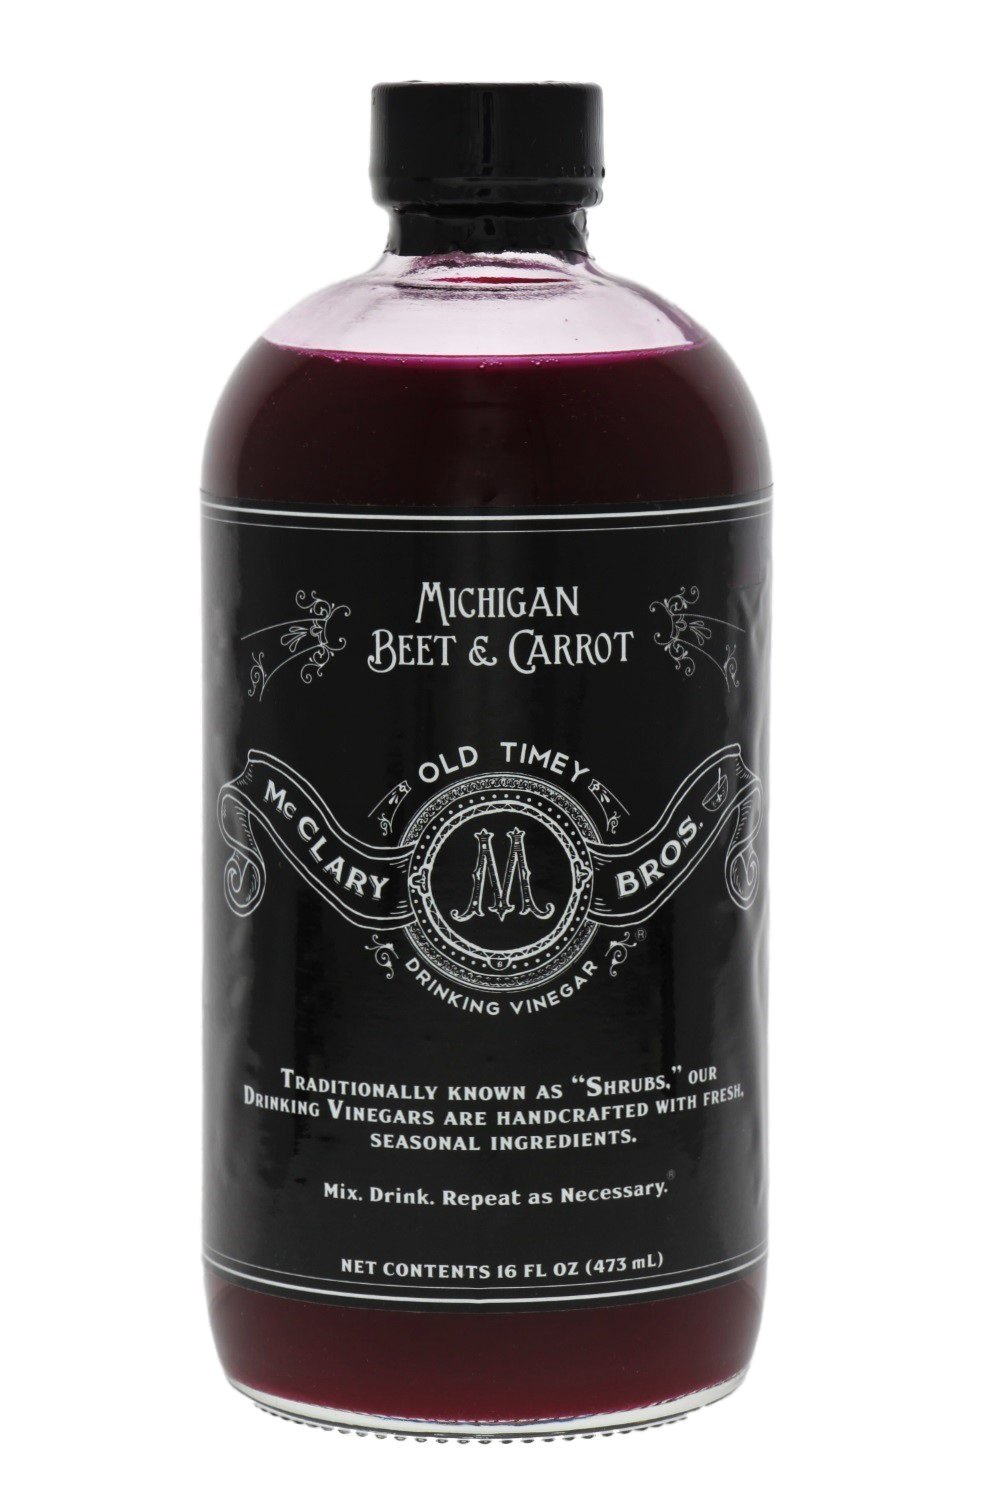 McClary Bros- Michigan Beet and Carrot- Handcrafted Drinking Vinegars- For Cooking, Craft Sodas and Shrub Cocktails